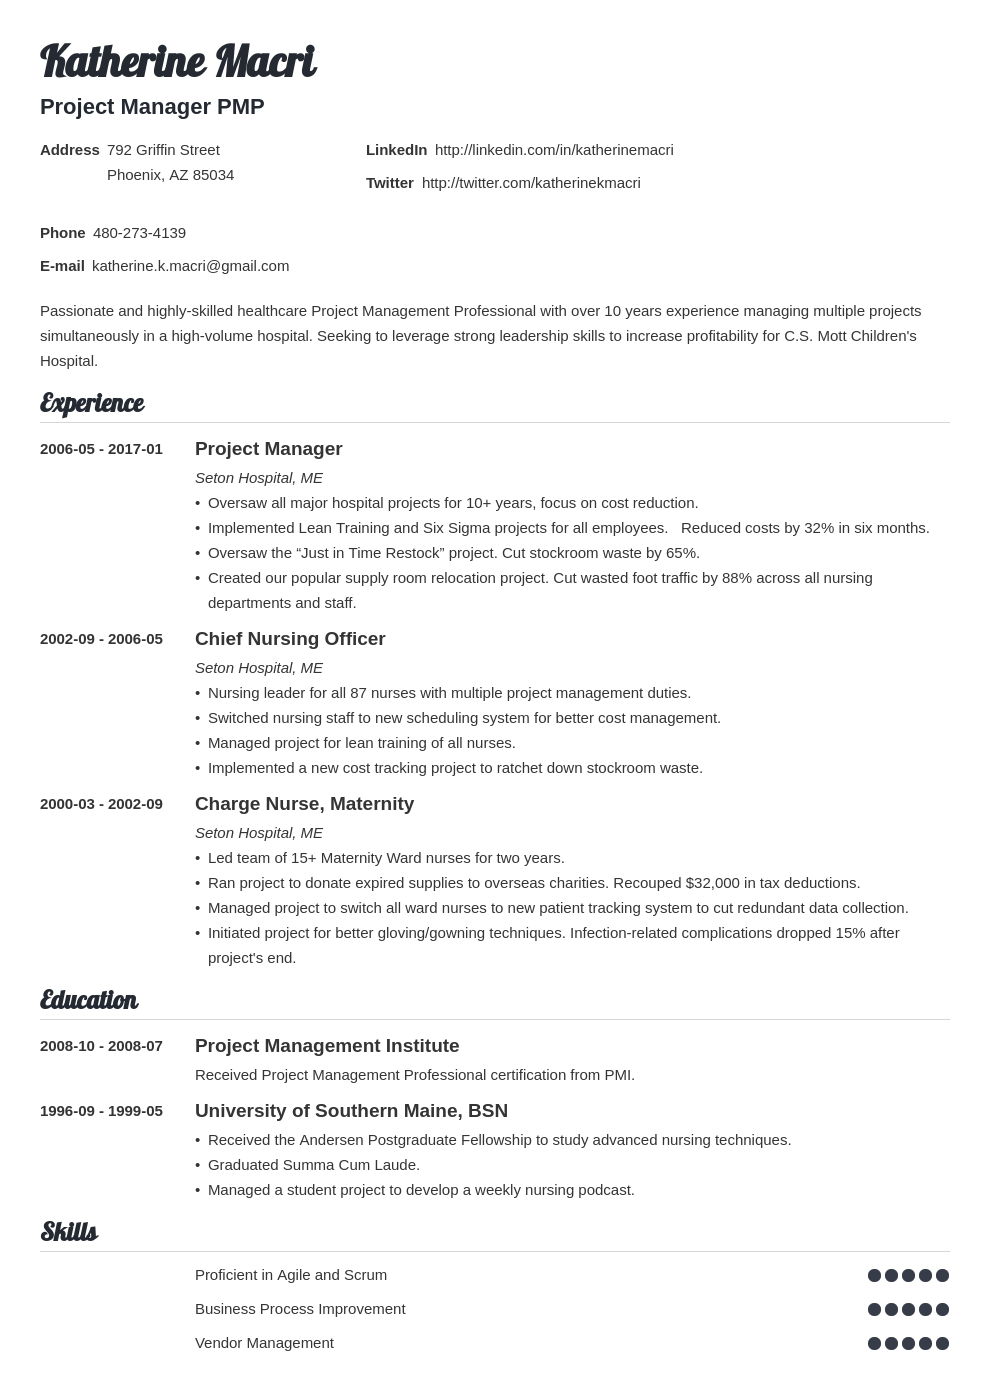 Project Manager Resume Template Valera Resume Examples Project Manager Resume Manager Resume